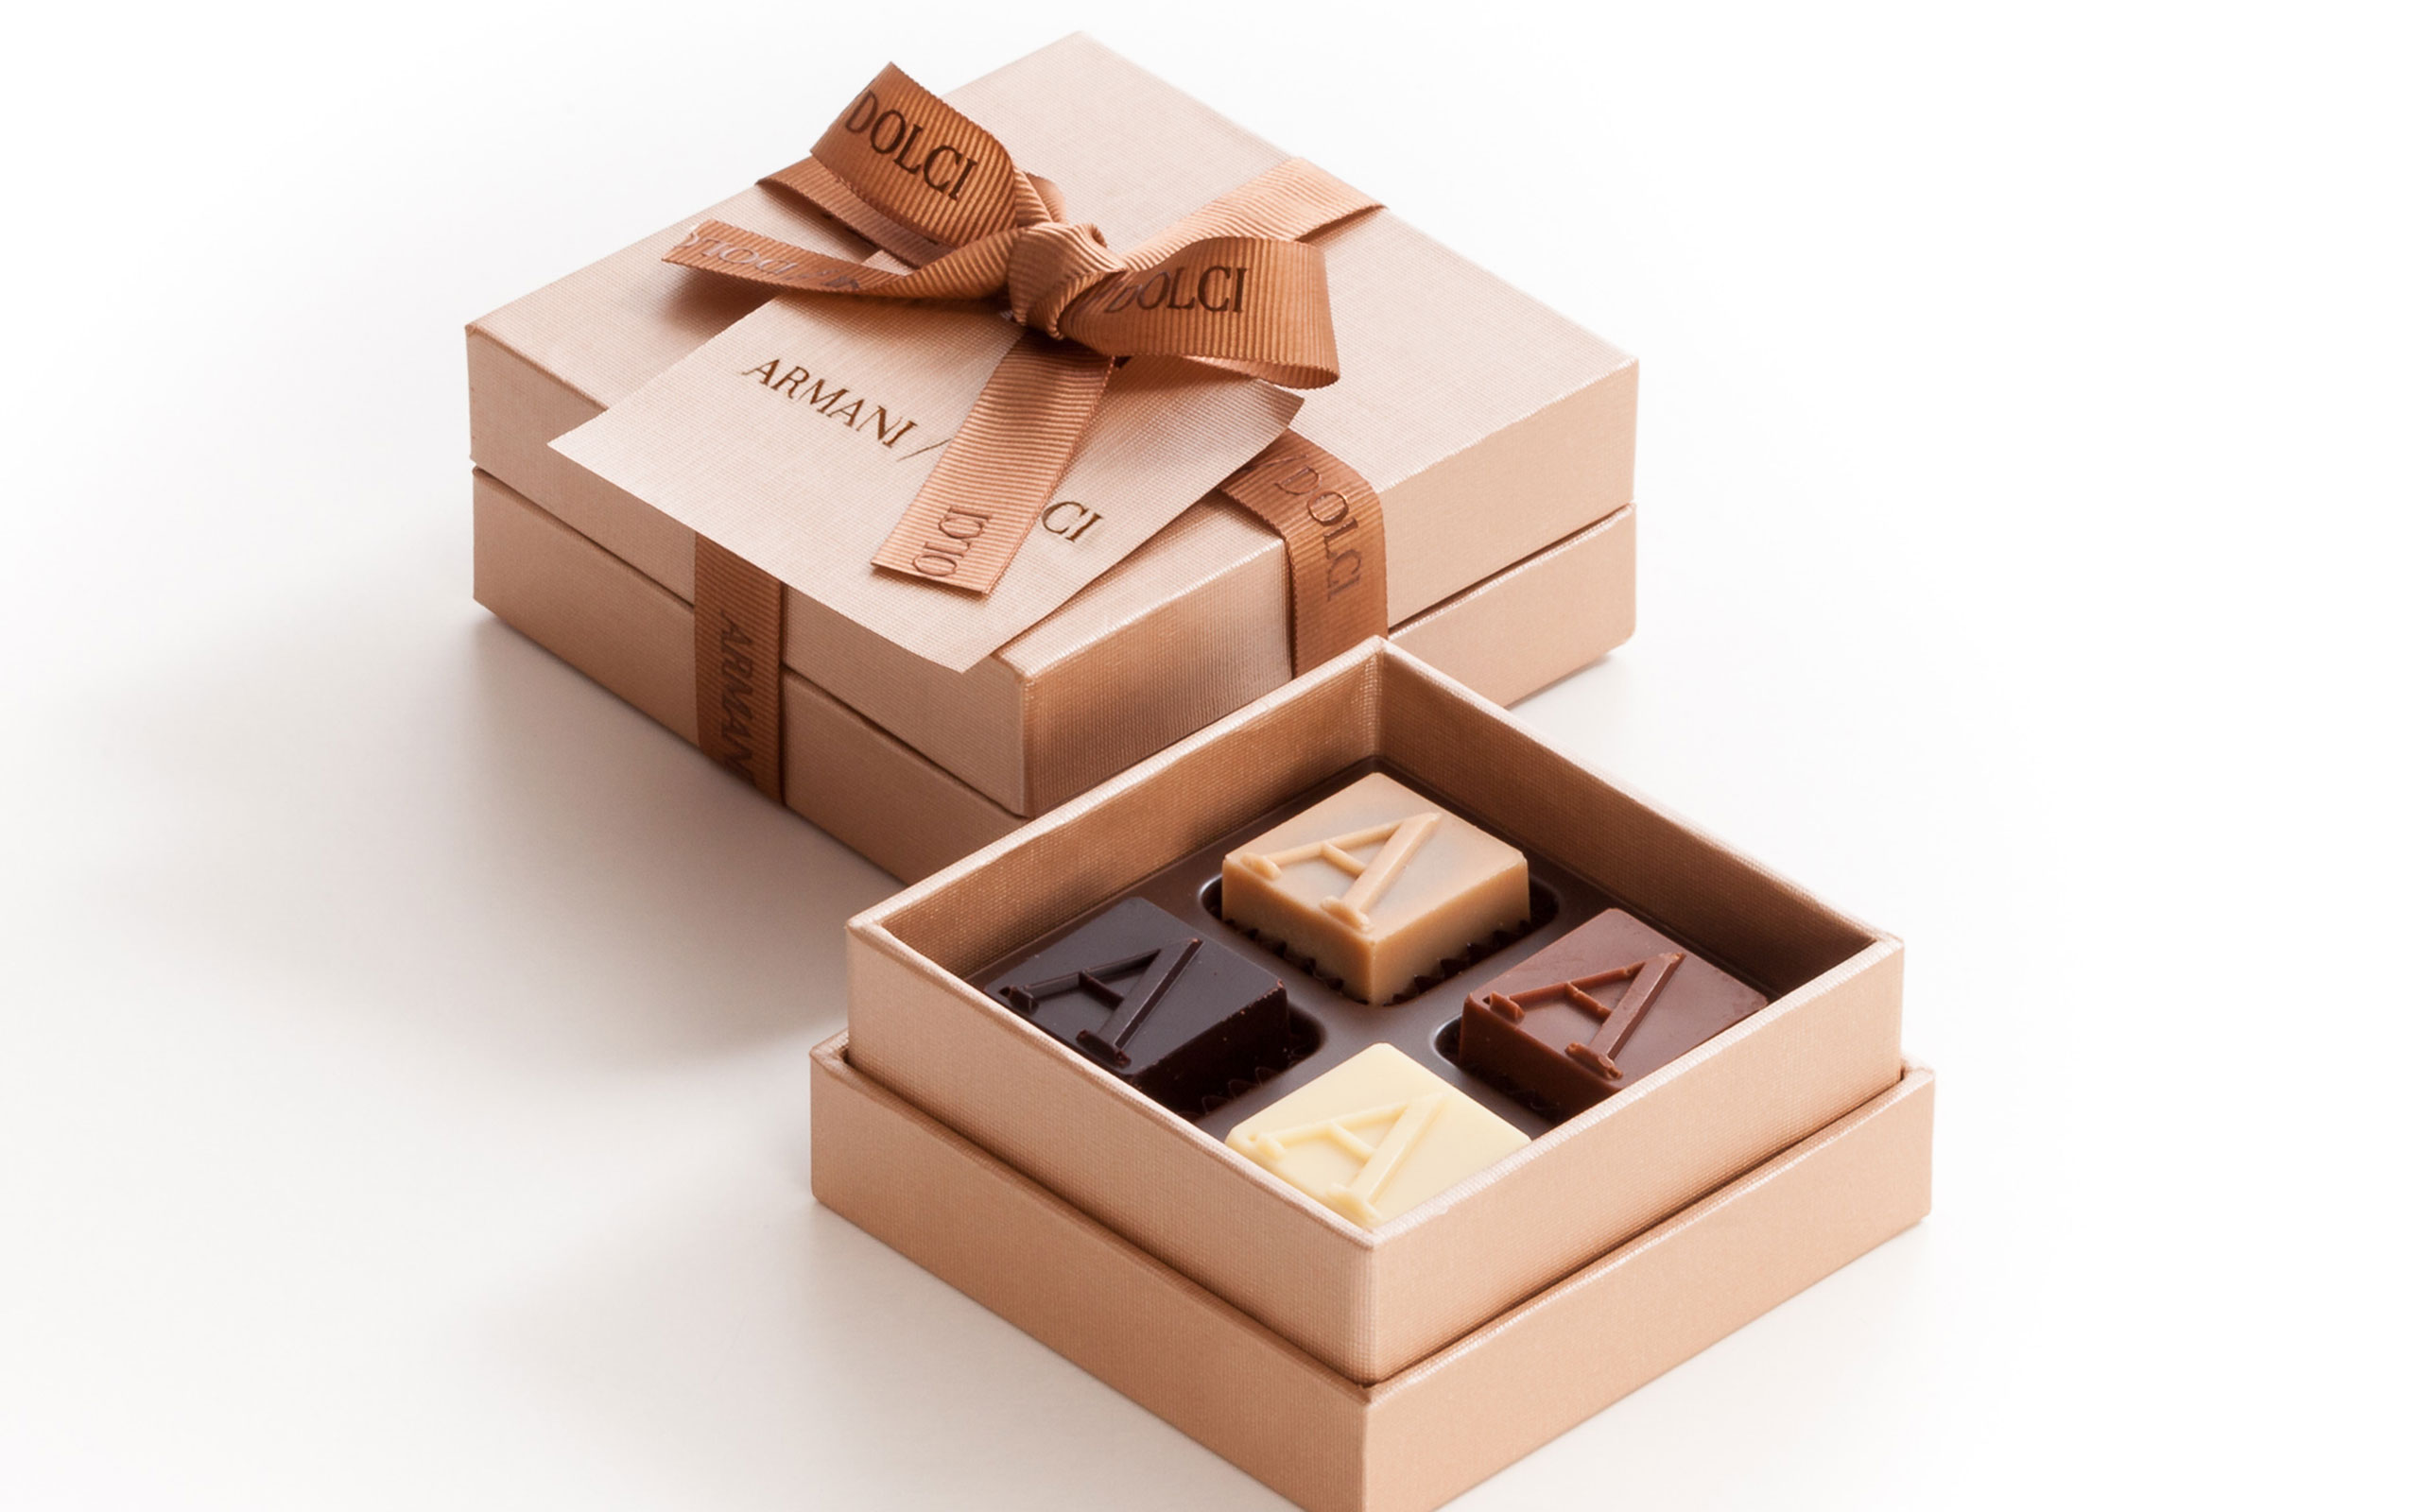 ARMANI / DOLCI  Recommends Gift Collection For White Day